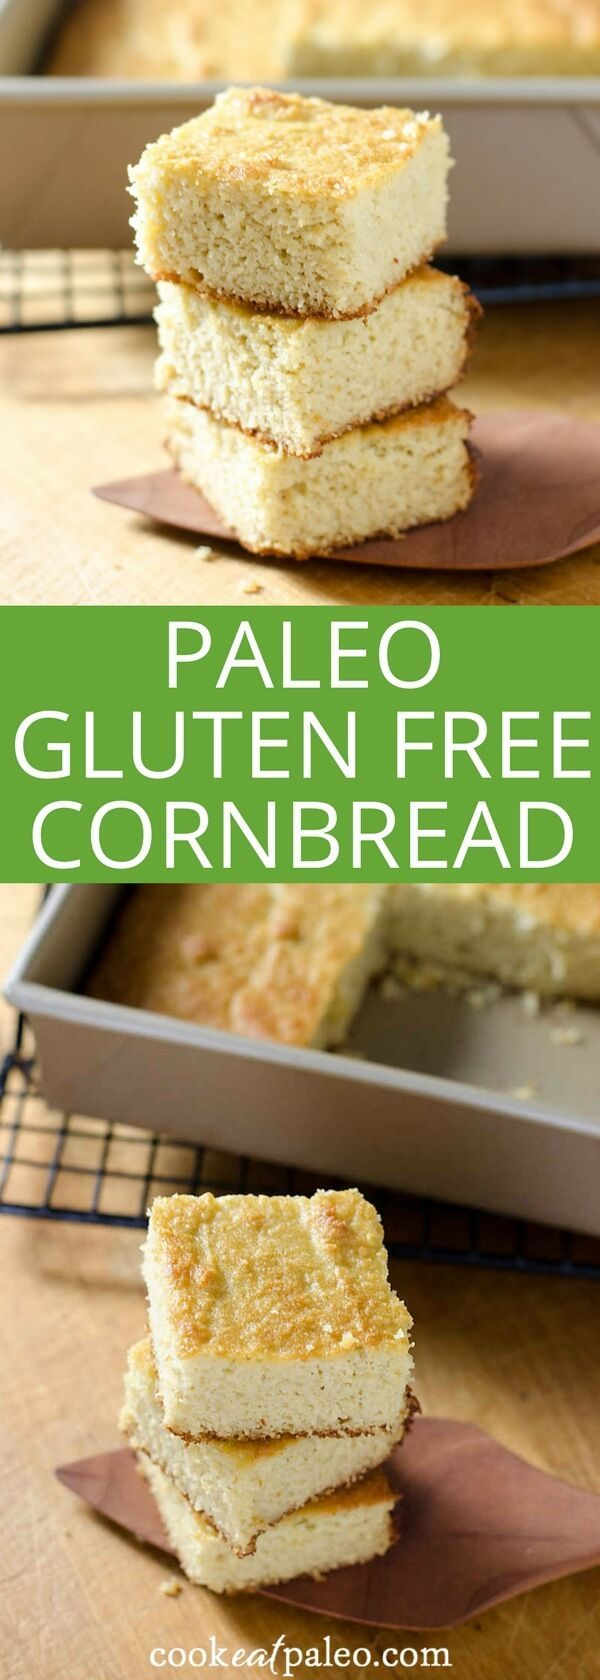 Gluten Free Cornbread Recipe - make this easy gluten-free cornbread ...